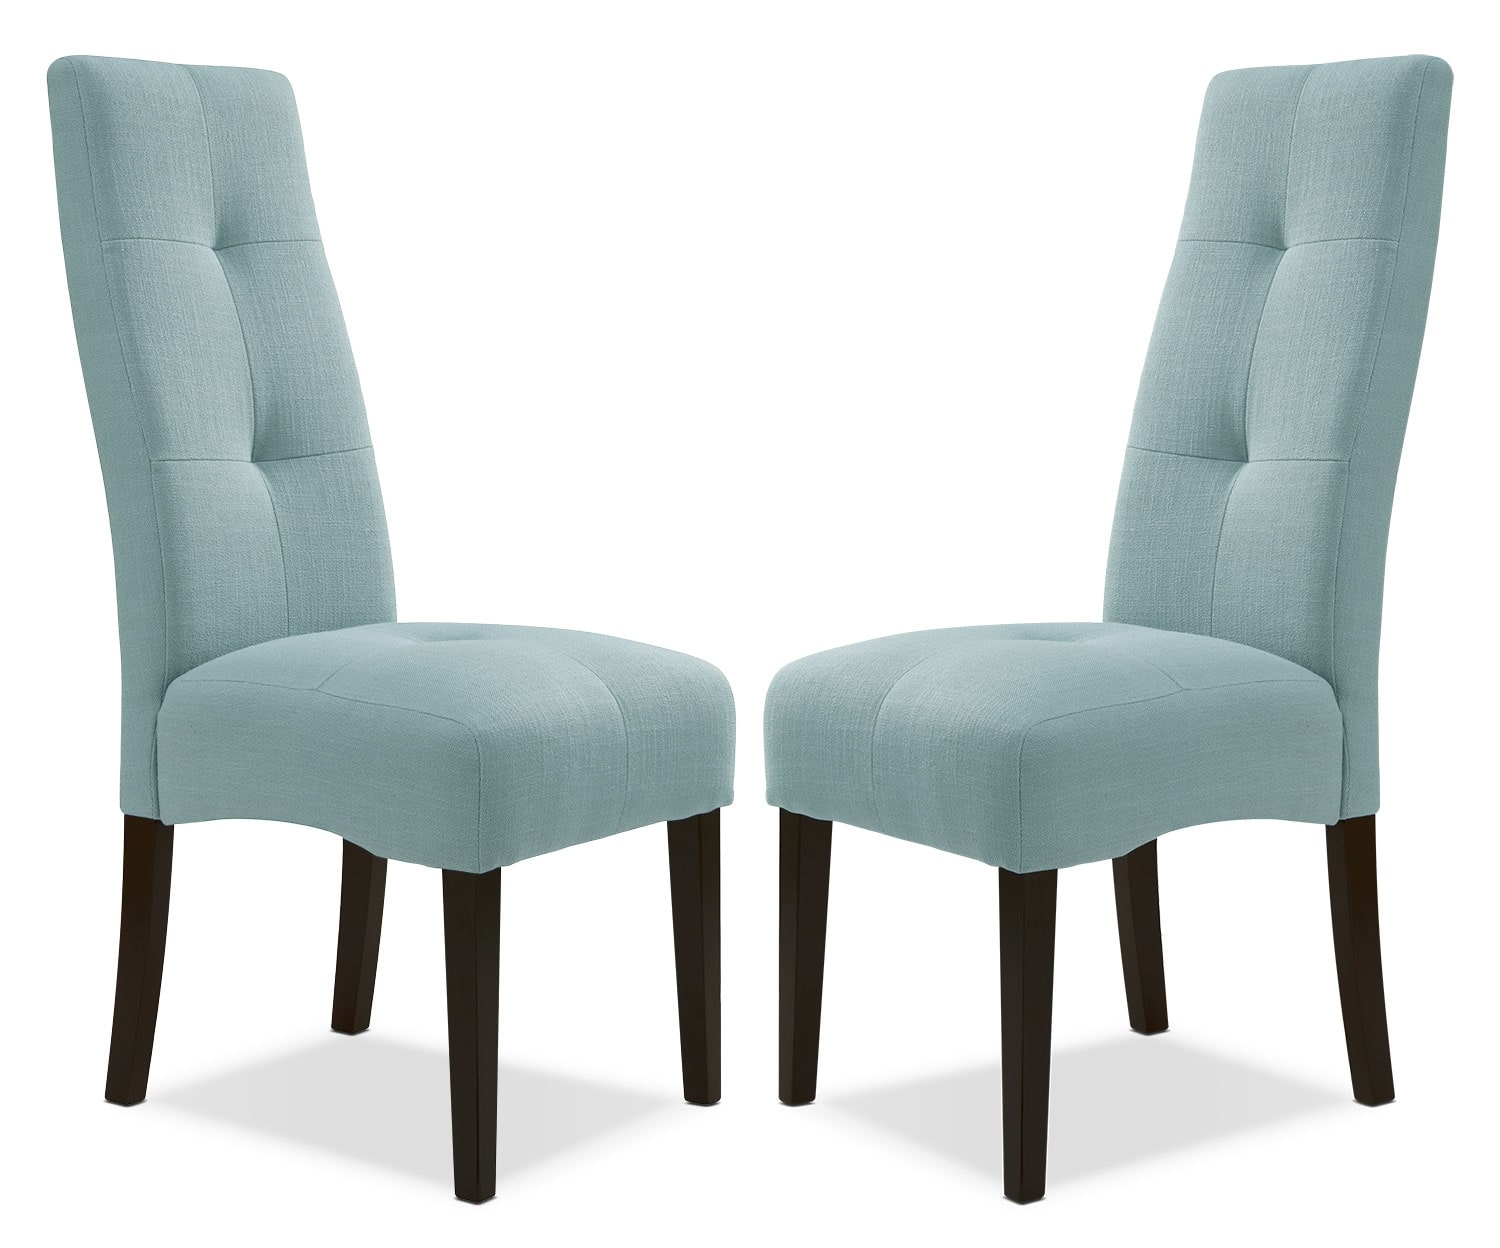 Sadie Light Blue Dining Chair – Set of 2